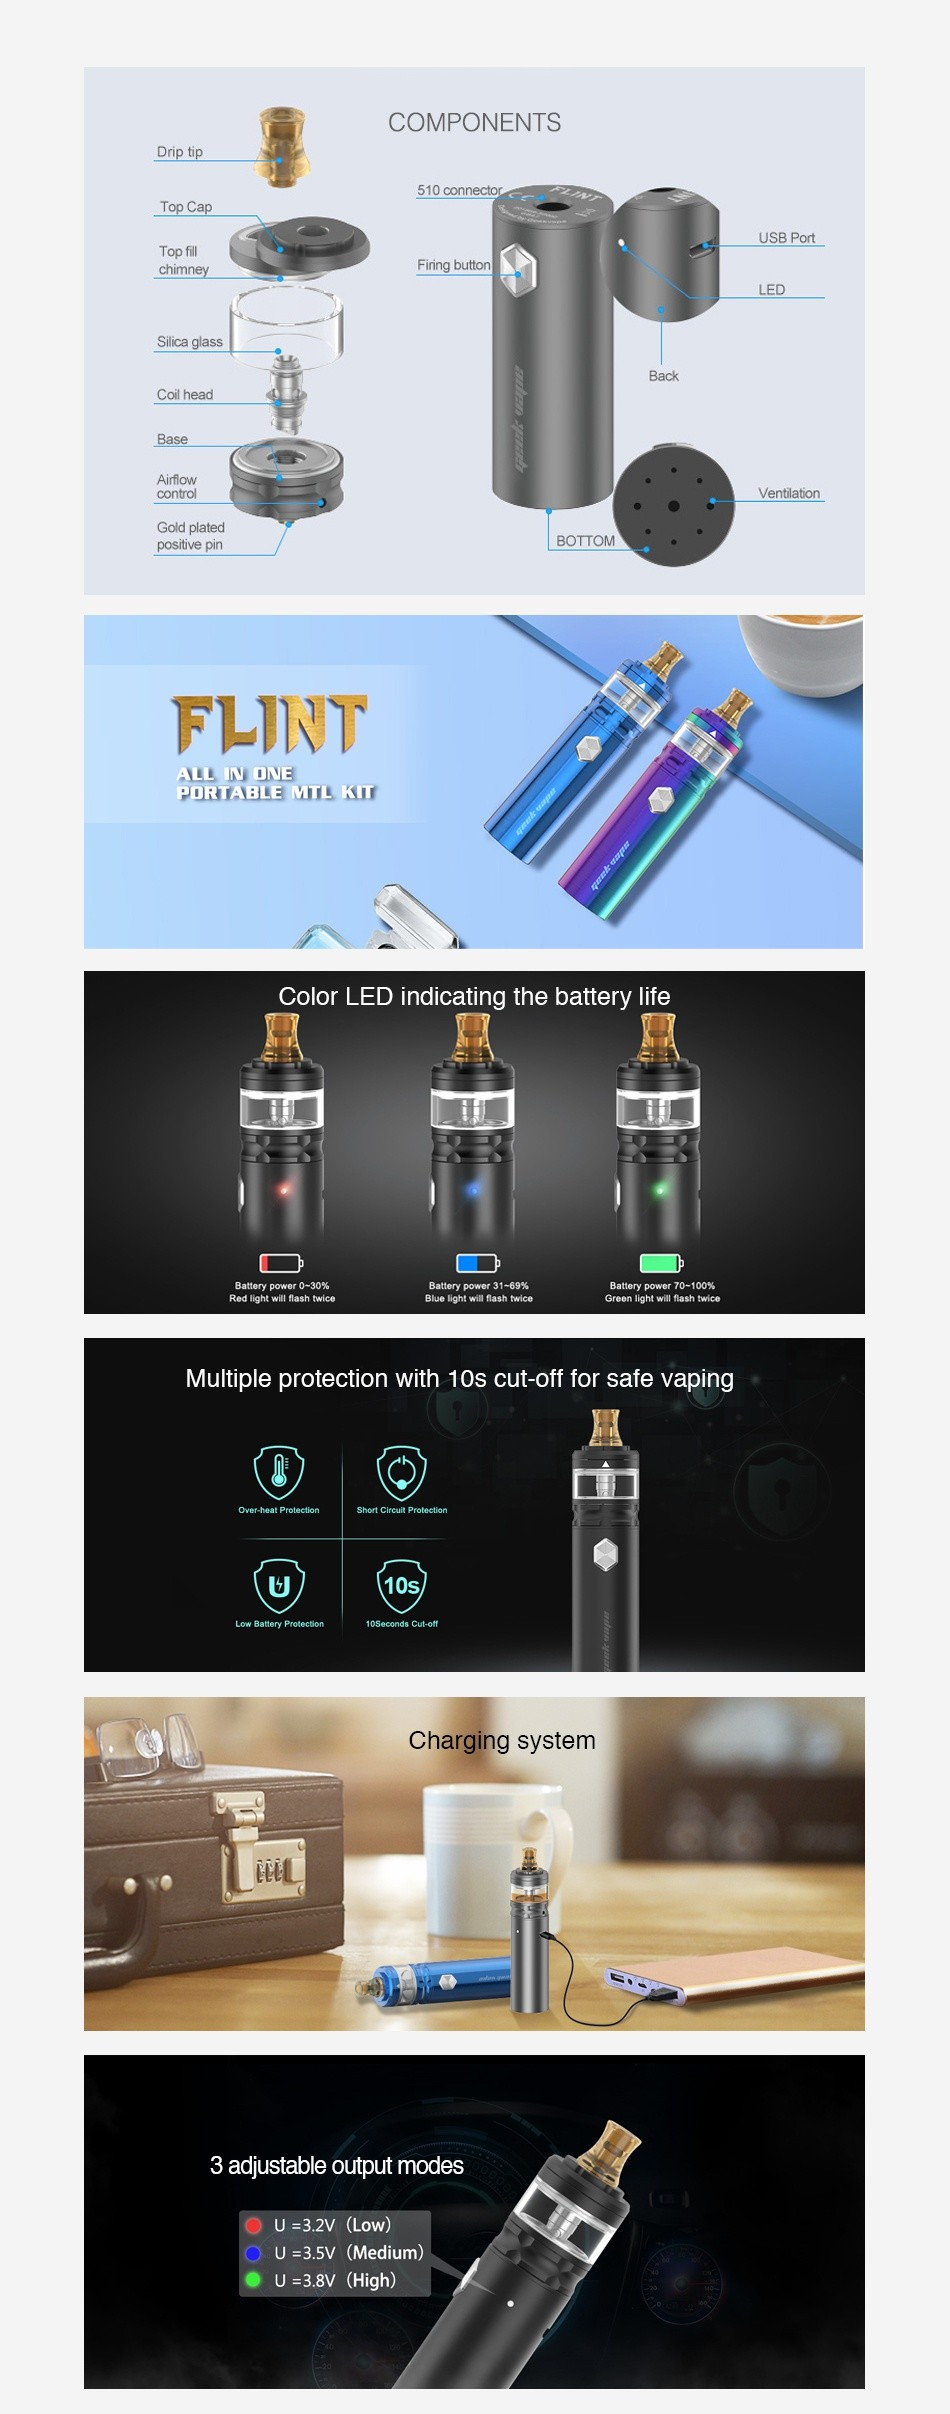 Geekvape Flint Starter Kit 1000mAh COMPONENTS 510 conne Top Ca chimney Firing button Coil rcad Base Airflow control God plated Cs  FLINT YLL IN ONE ORTABLE MTL KIT Color LEd indicating the battery life Multiple protection with 10s cut off for safe vaping Charging system 3 adjustable output modes O U 3  2V Low   U 35 Medium   U 38V High